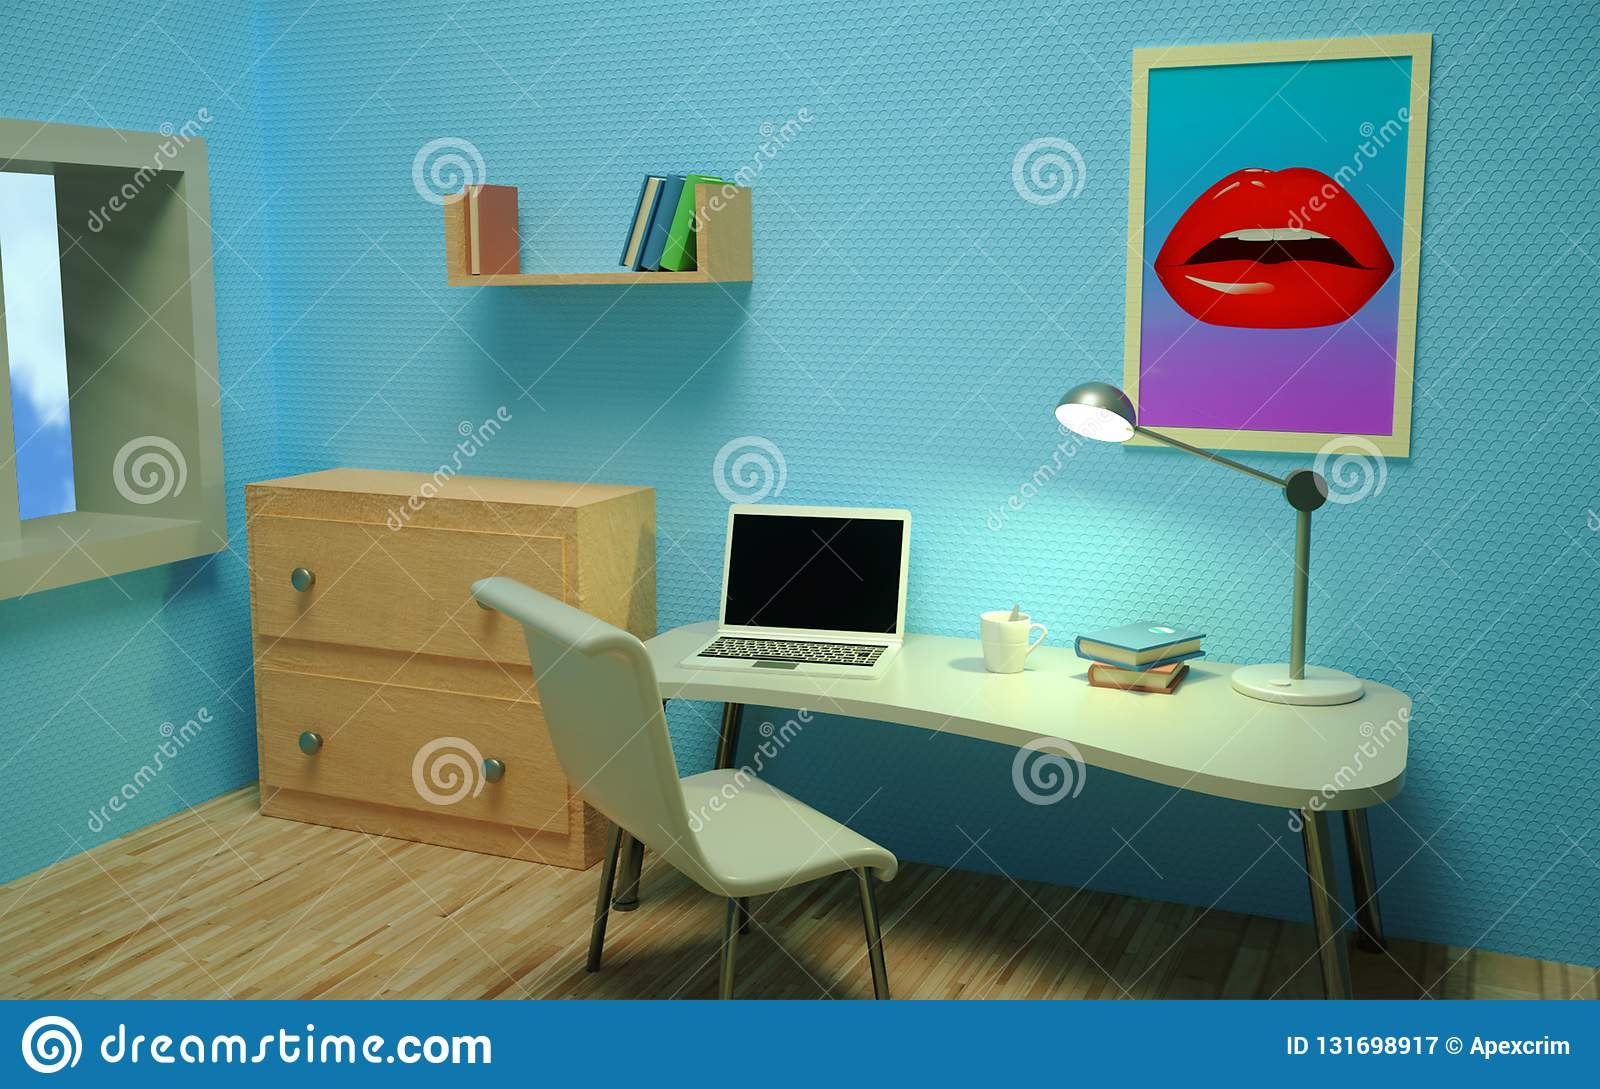 Bright room with blue wallpaper with a table, chest of drawers, window, laptop, books, shelf, cup, chair, lamp. Room interior. Workplace. Perspective view.